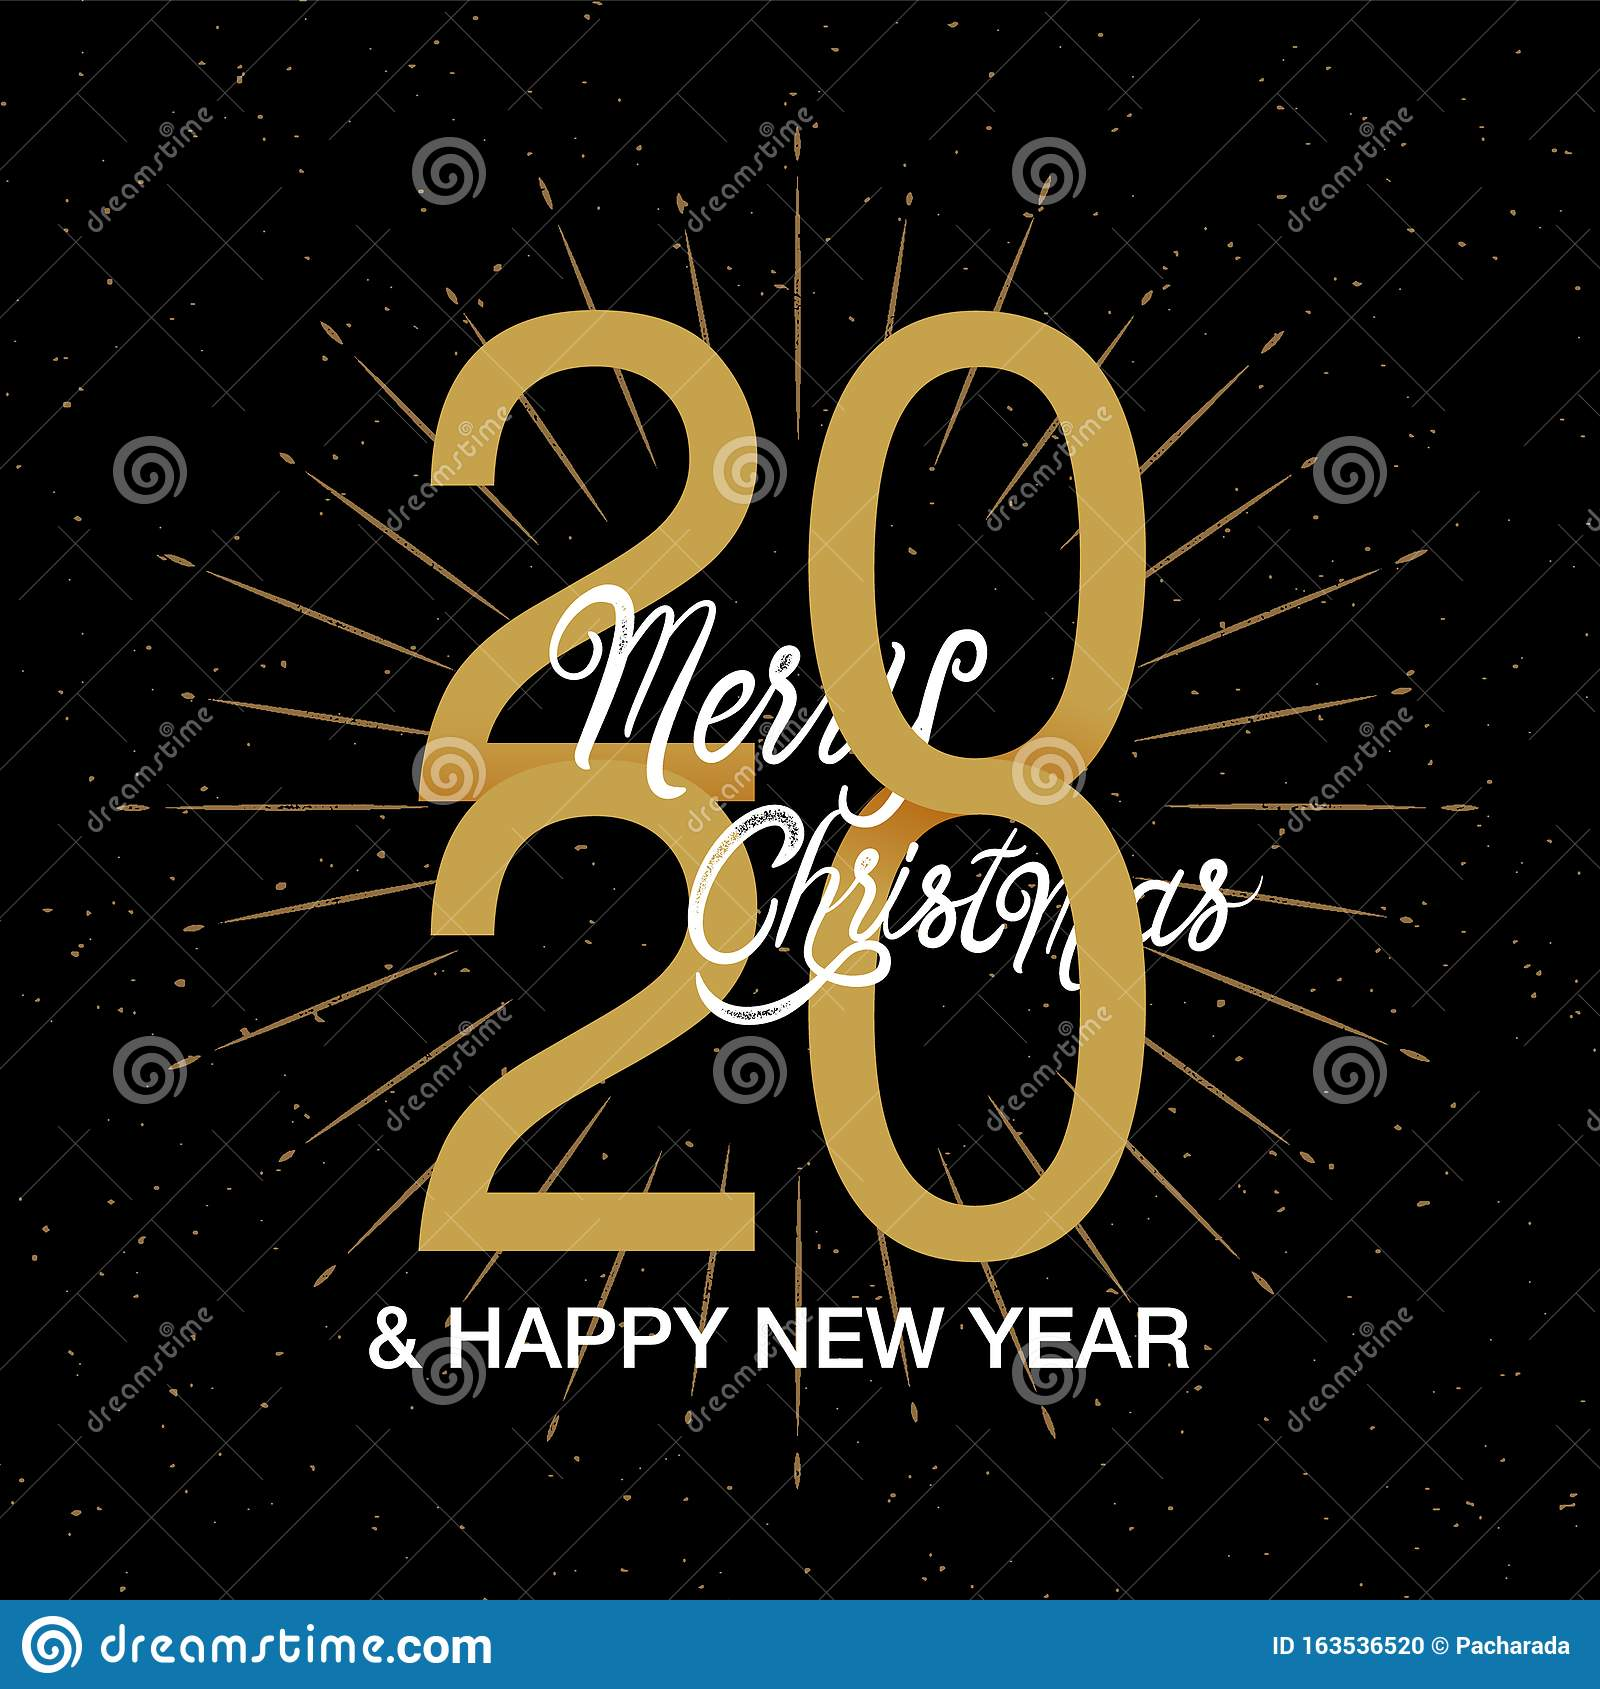 Merry Christmas 2020 Logo Happy New Year 2020 Logo Text Design. Merry Christmas ,design